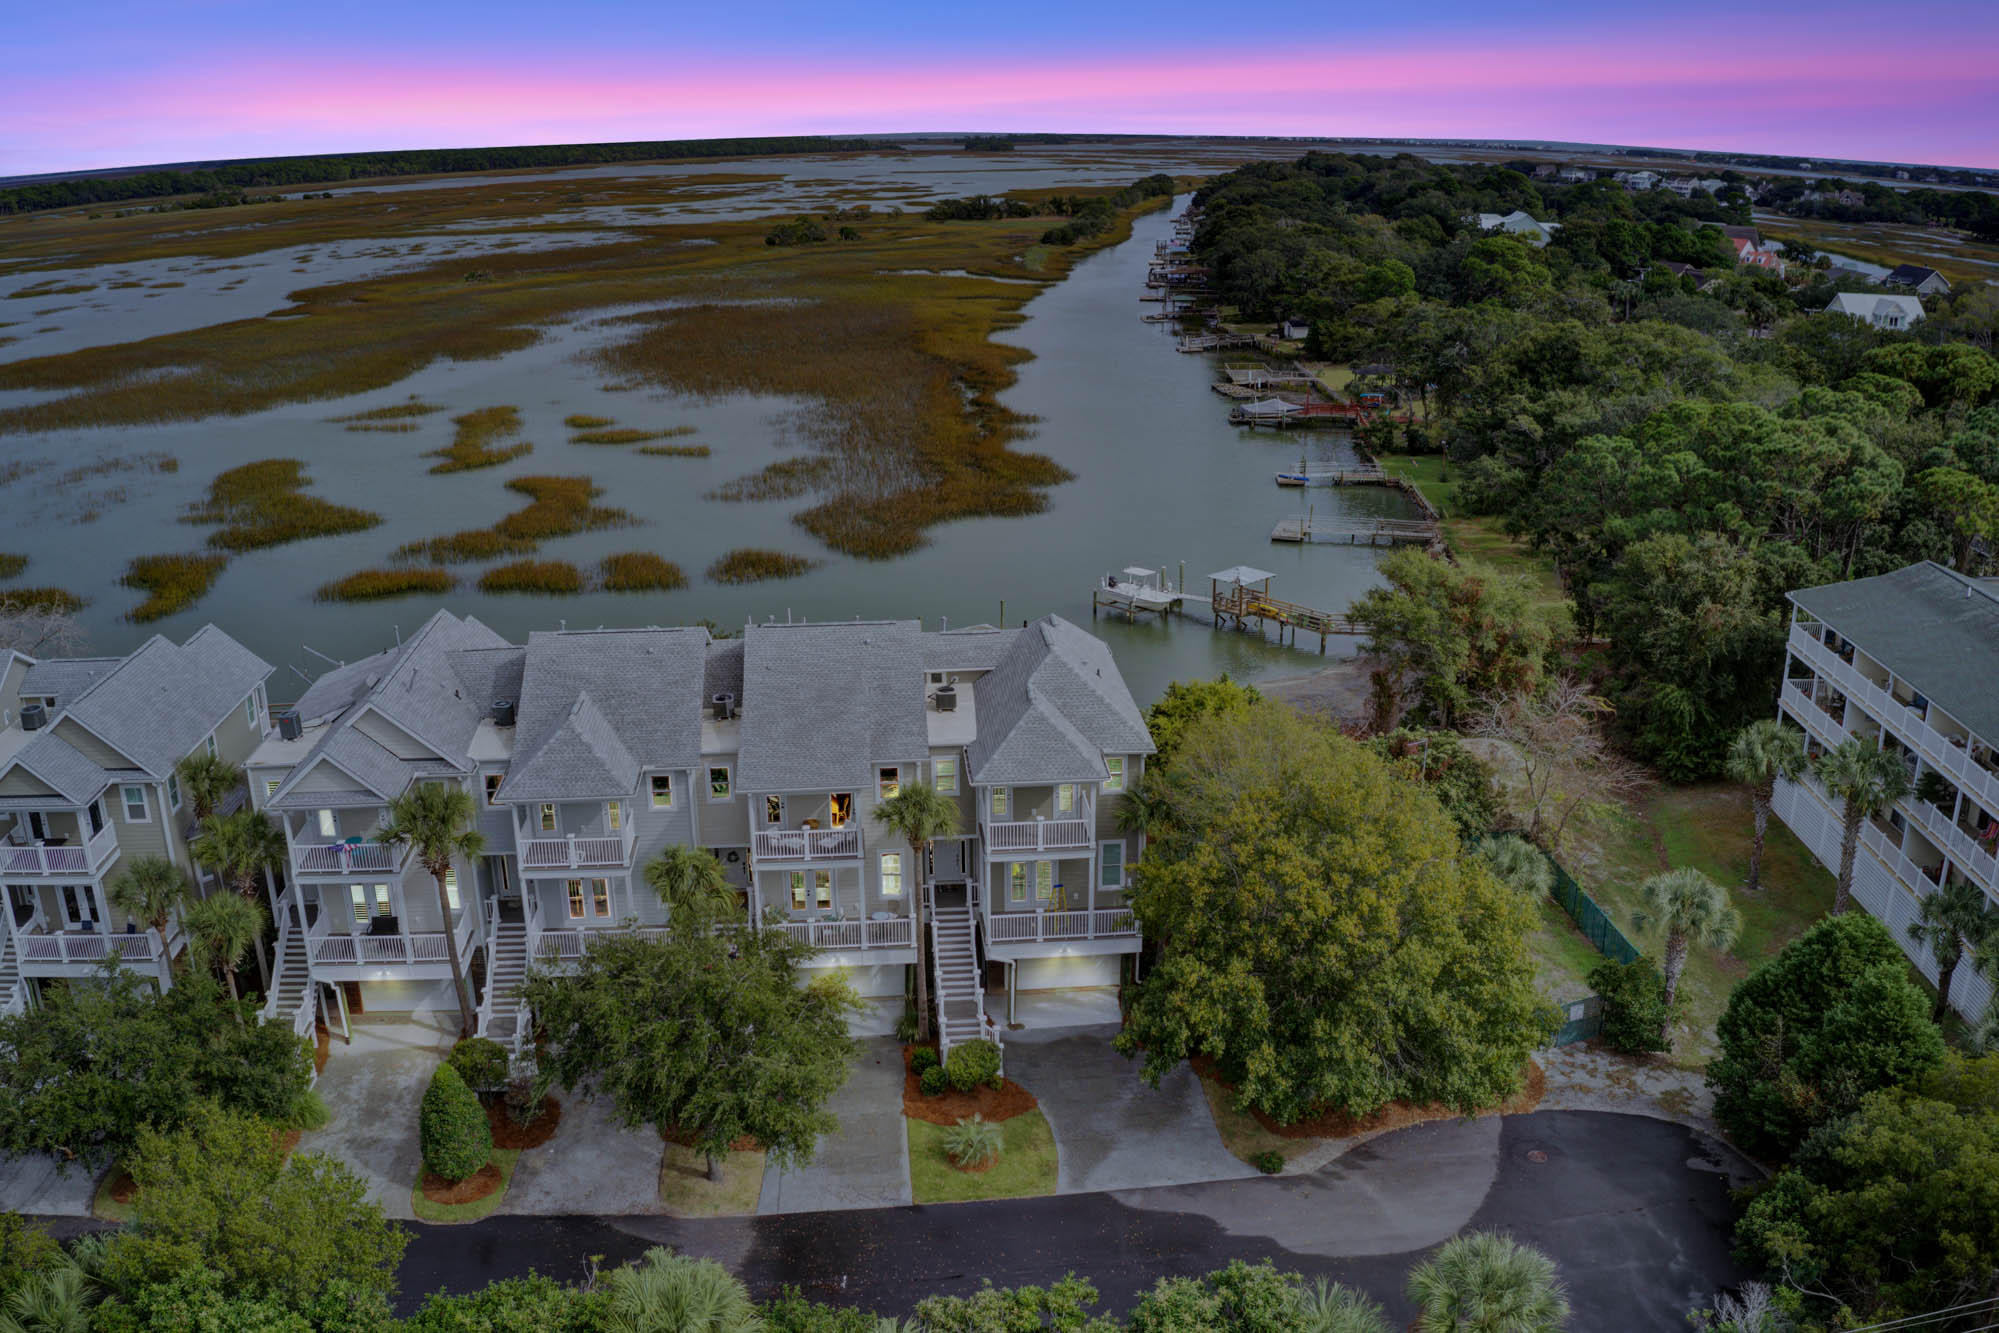 Folly Creek Place Homes For Sale - 2240 Folly, Folly Beach, SC - 15